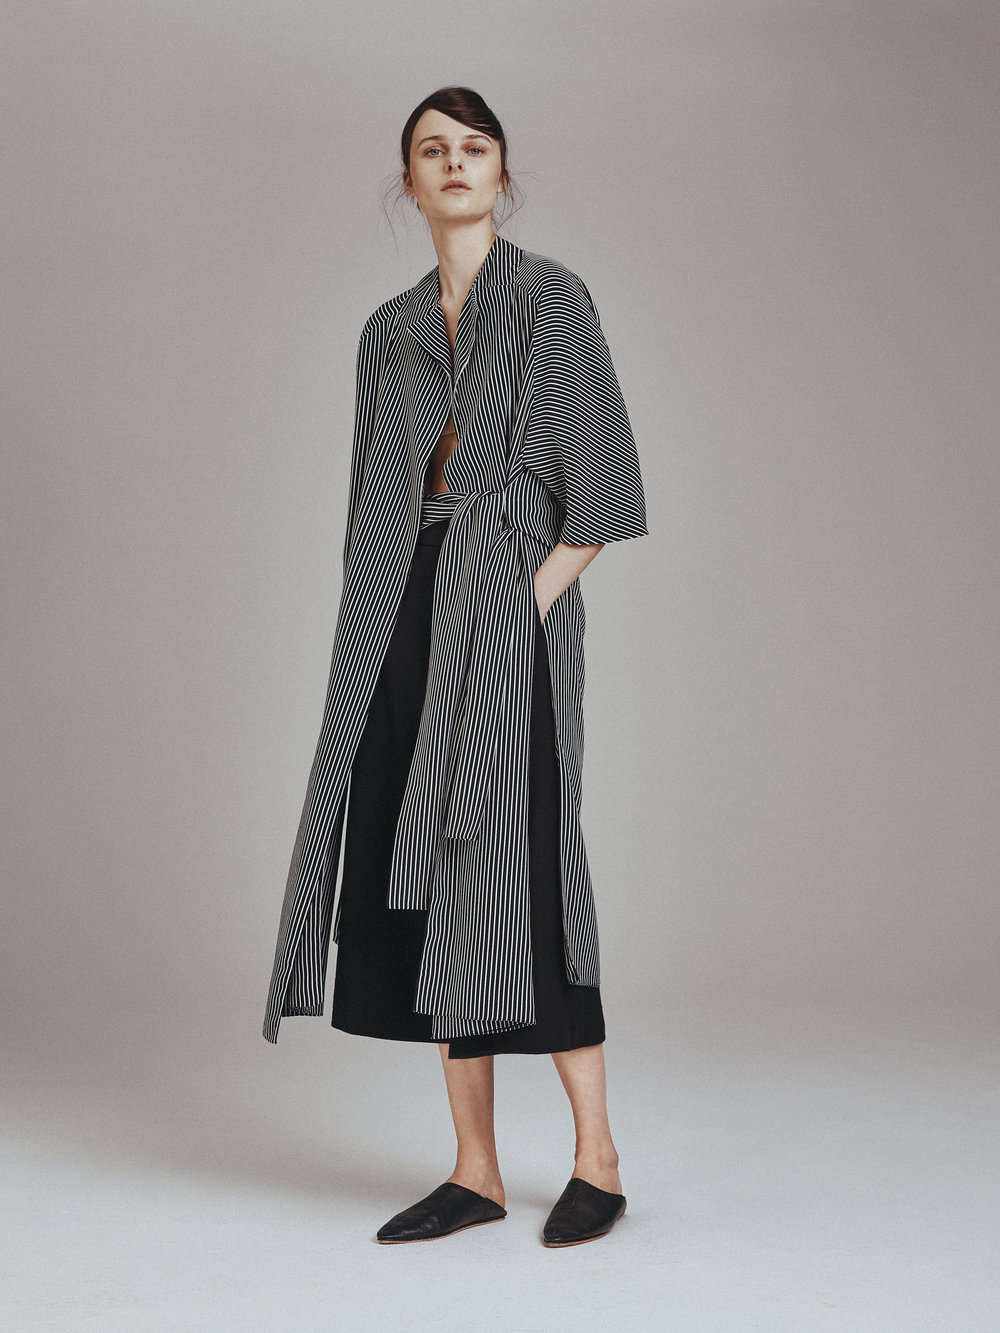 GARANCE JACKET   Crepe de Chine  -   ELSA PANTS  Wool Jersey   Stretch Charmeuse Lining